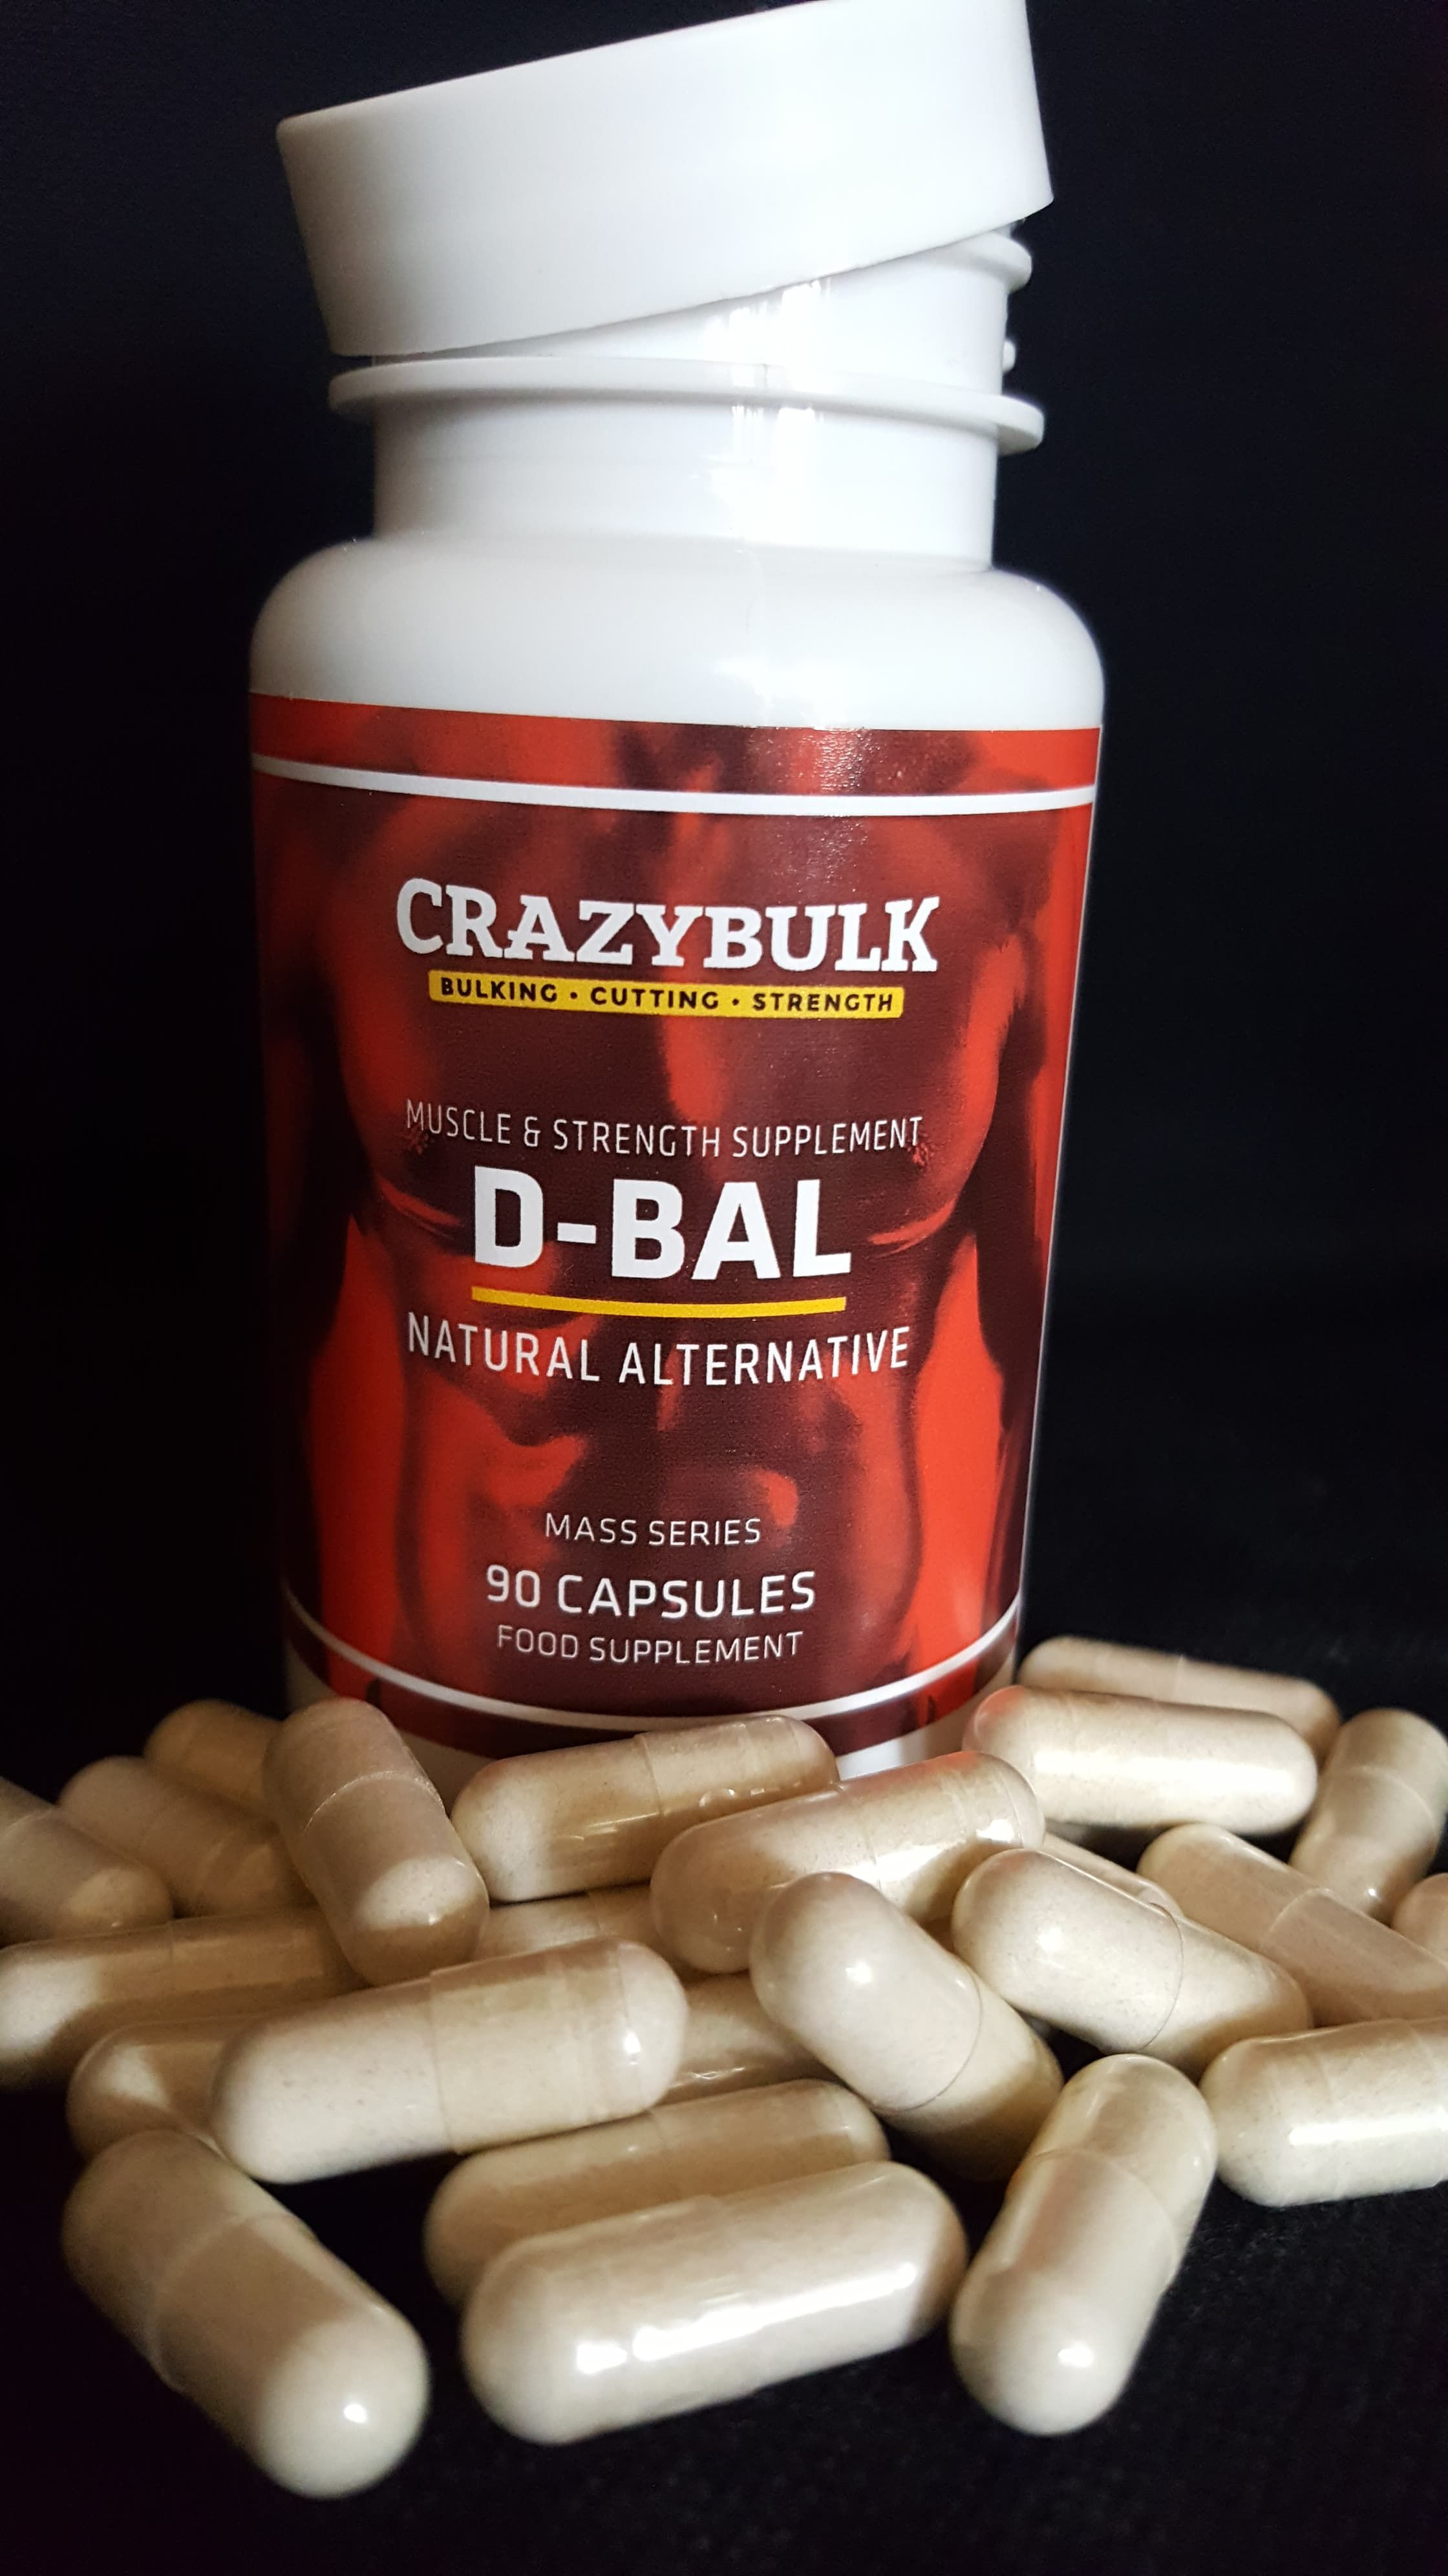 a9d0a1af3839 Crazy Bulk D-Bal Review 2018 – Legal Dianabol Alternative its best for  muscle gains.Crazy Bulk D-Bal is claimed to be the safest and most  effective ...